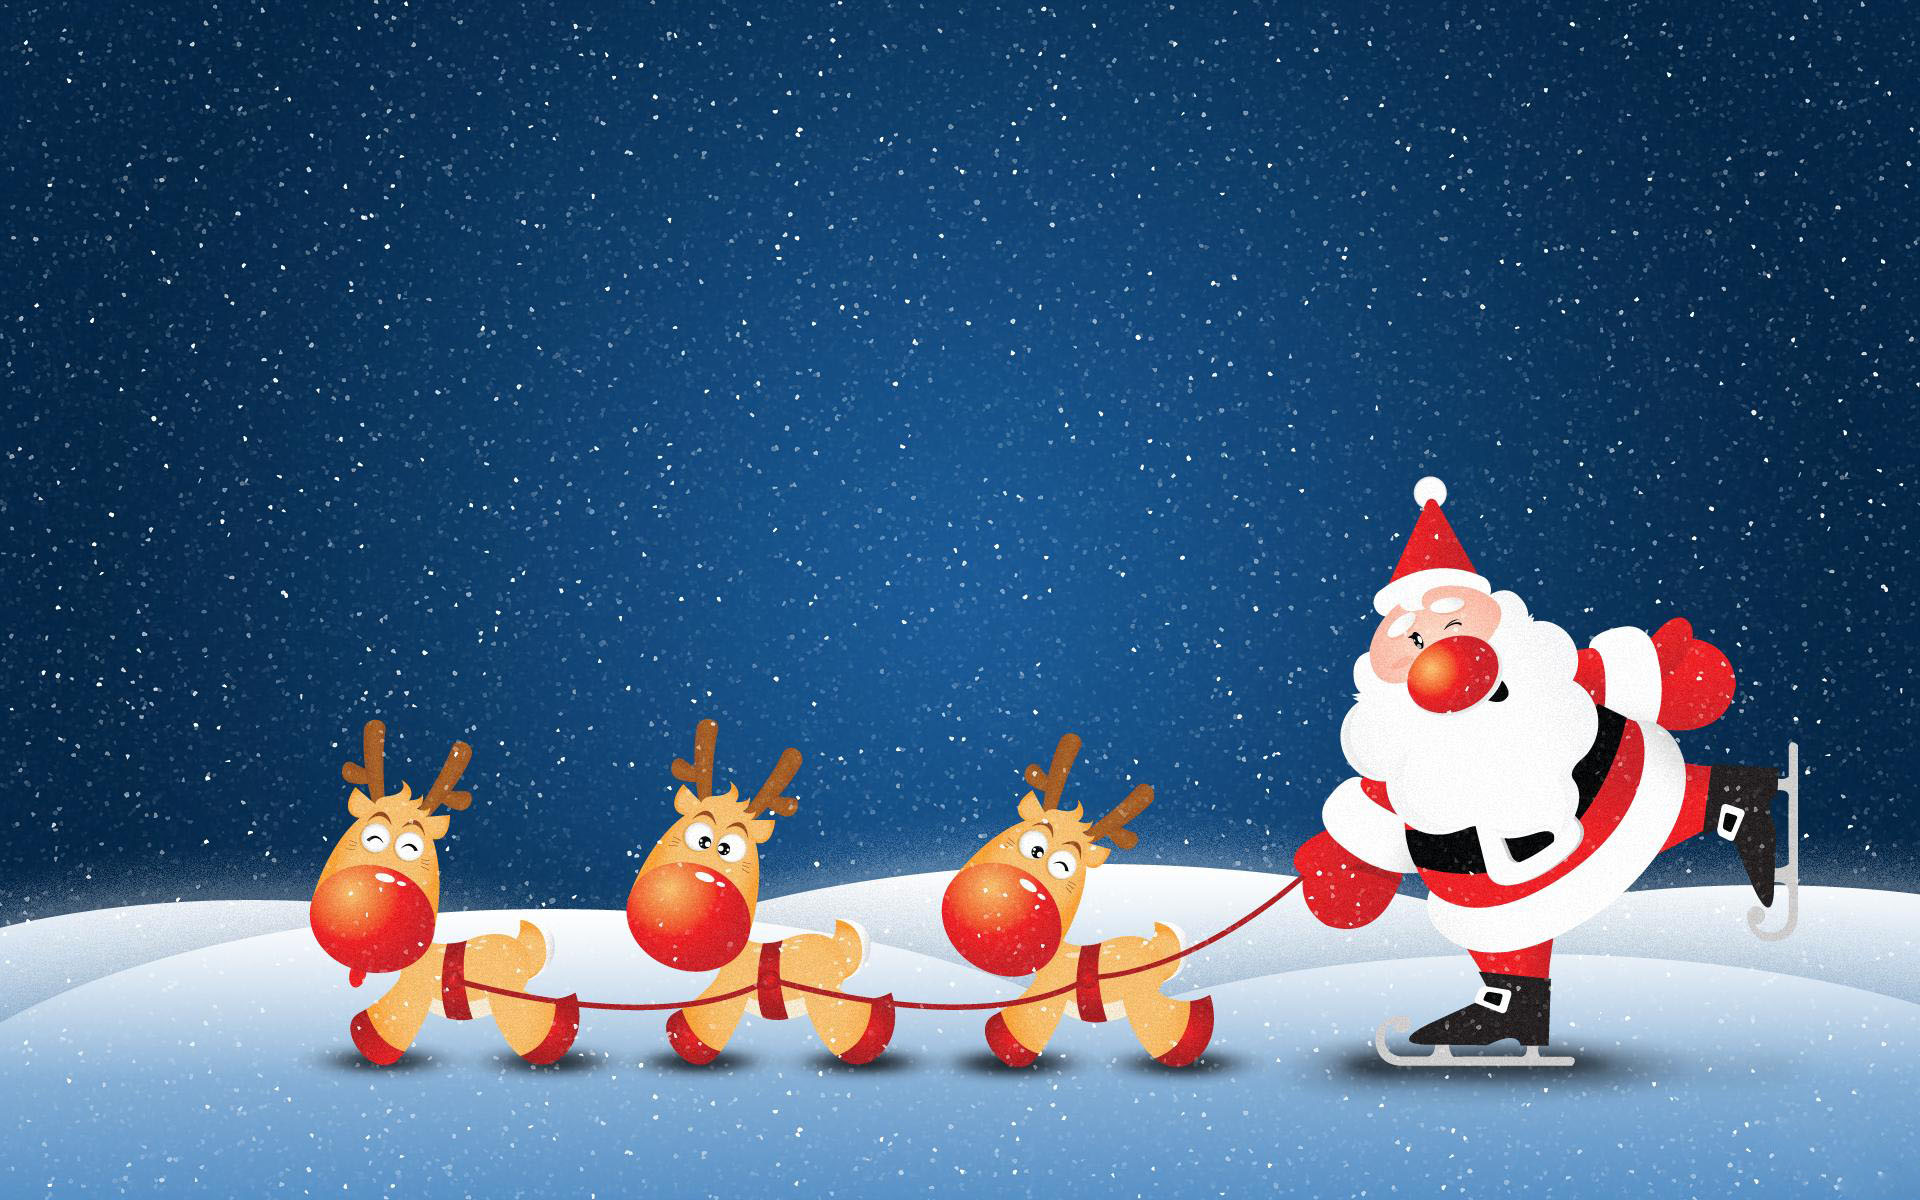 Christmas Related Wallpapers